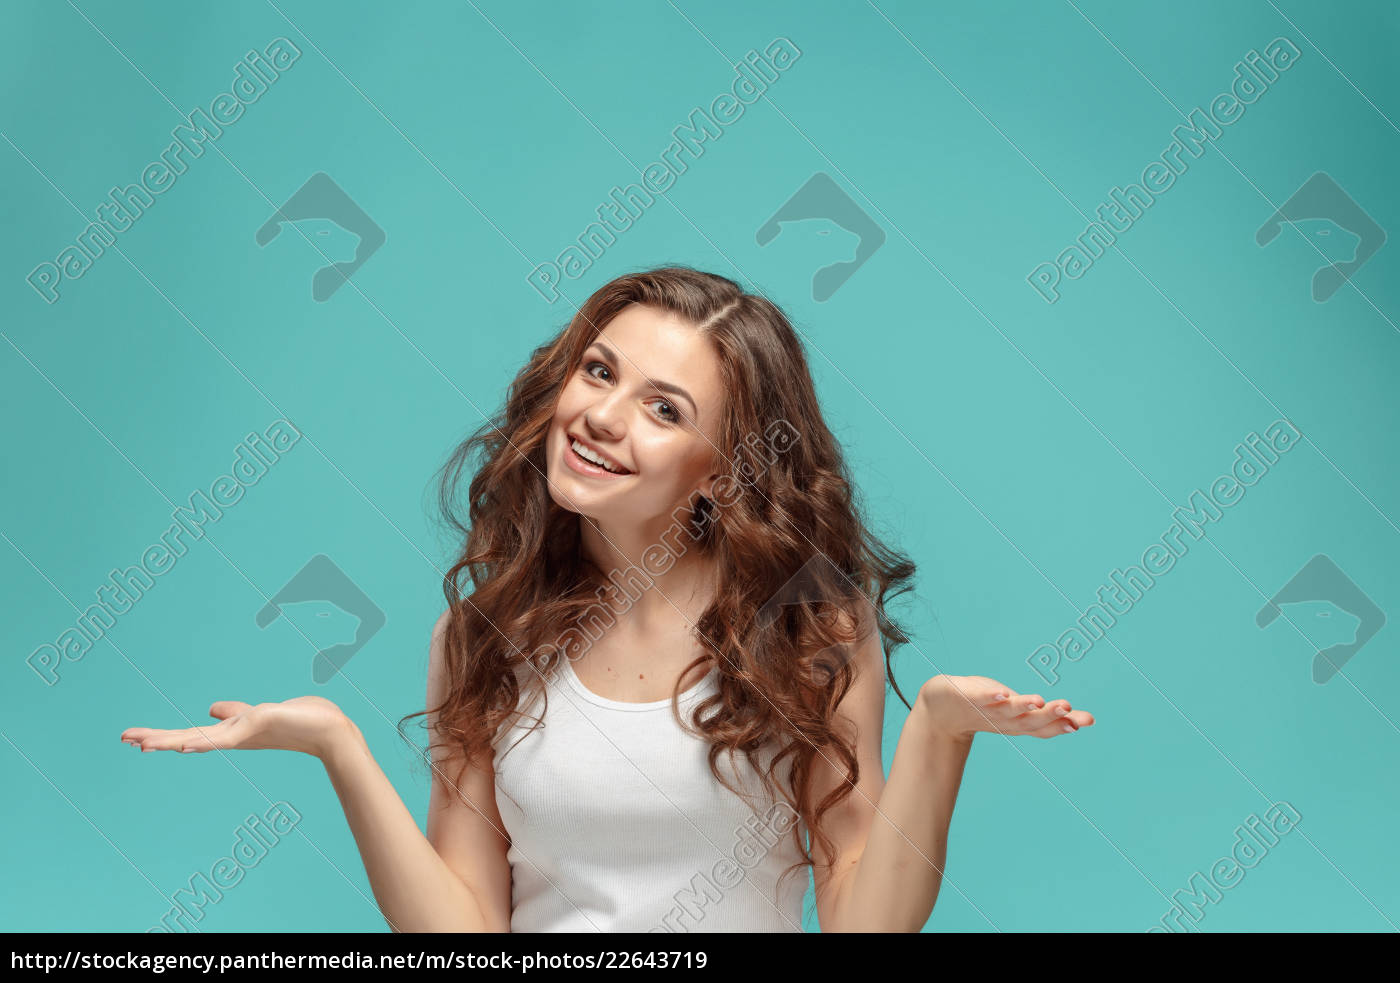 the, young, woman's, portrait, with, happy - 22643719